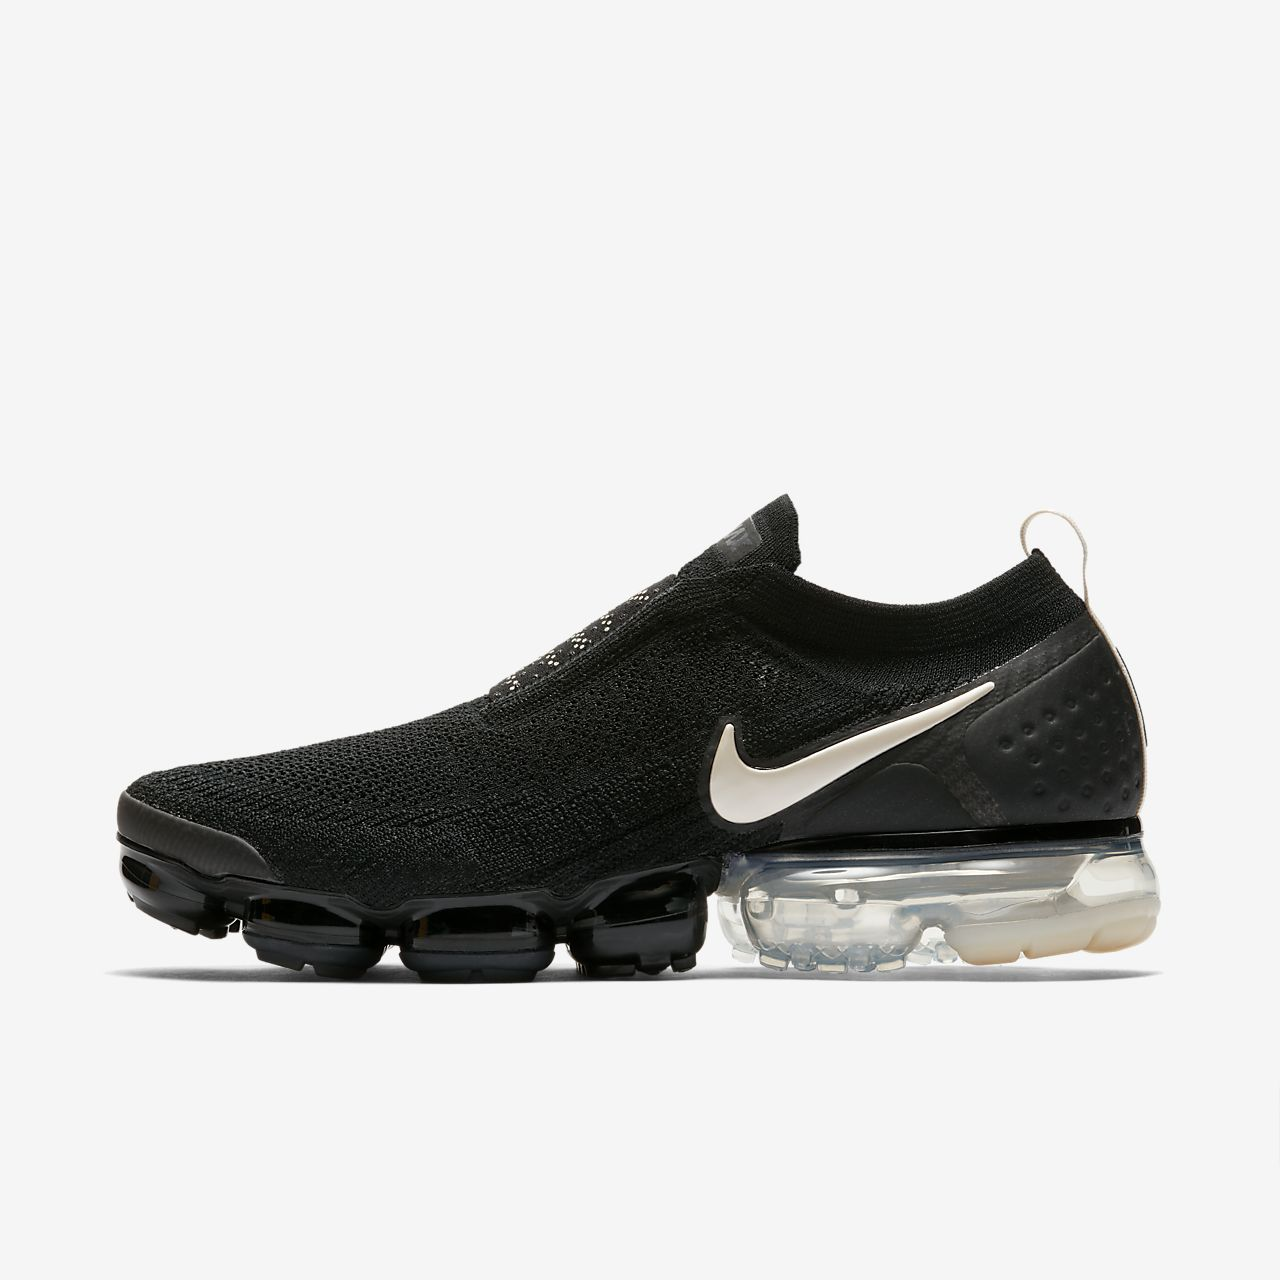 premium selection f0291 ad094 Nike Air VaporMax Flyknit Moc 2 Shoe. Nike.com GB